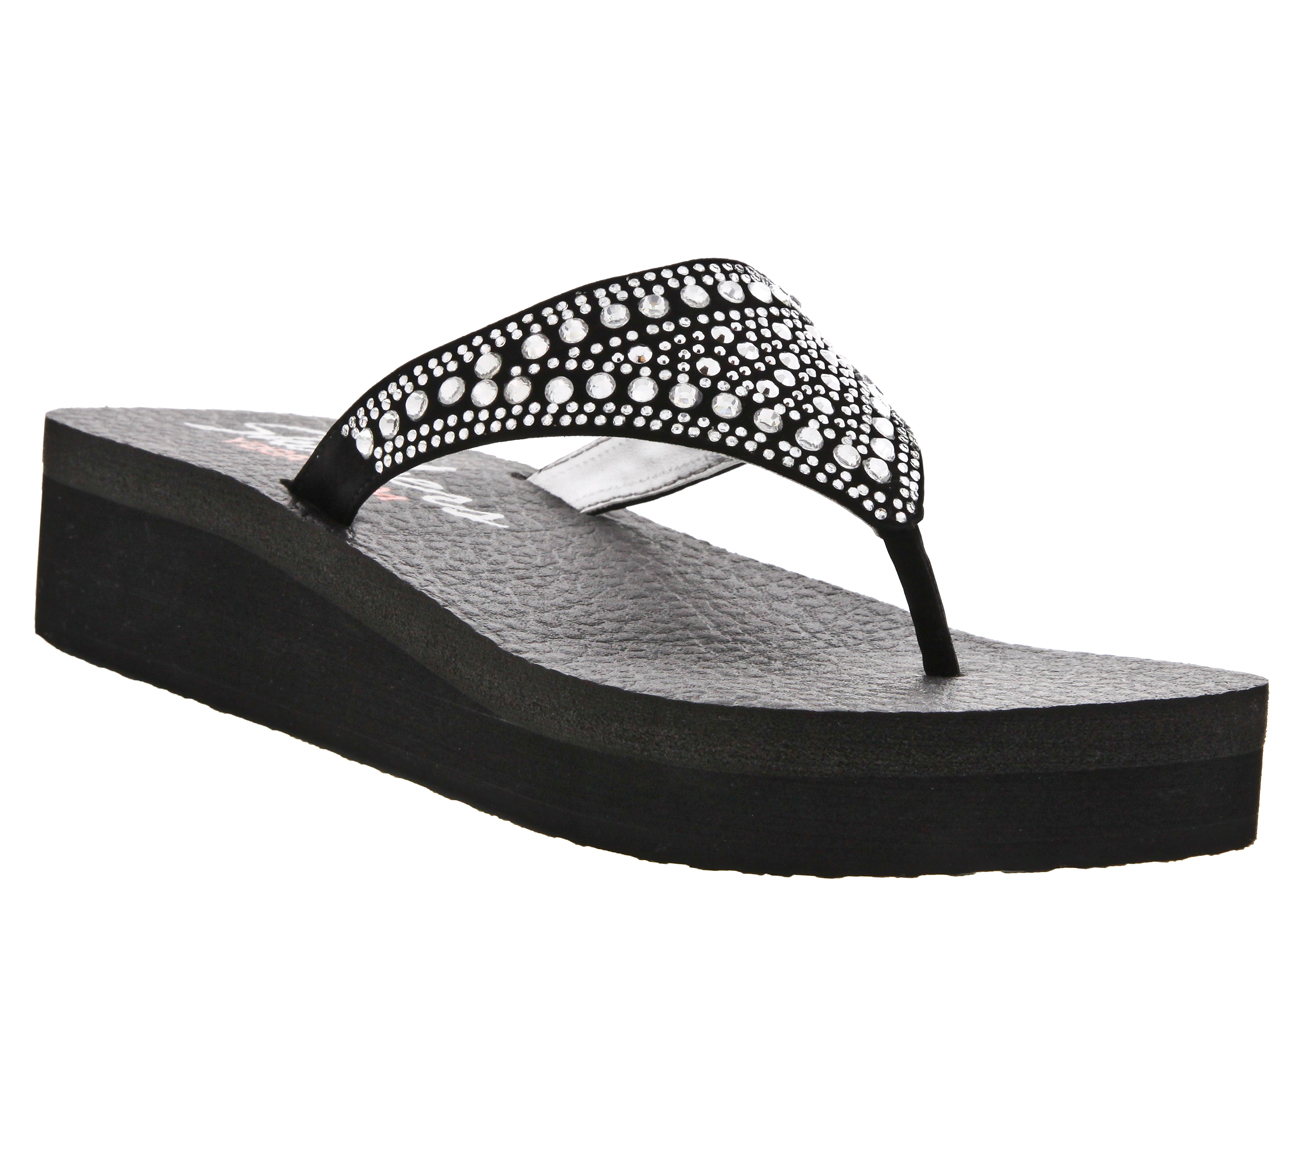 Yoga Shoes Skechers: Skechers 38494 BKSL Women's VINYASA - BINDI Sandals